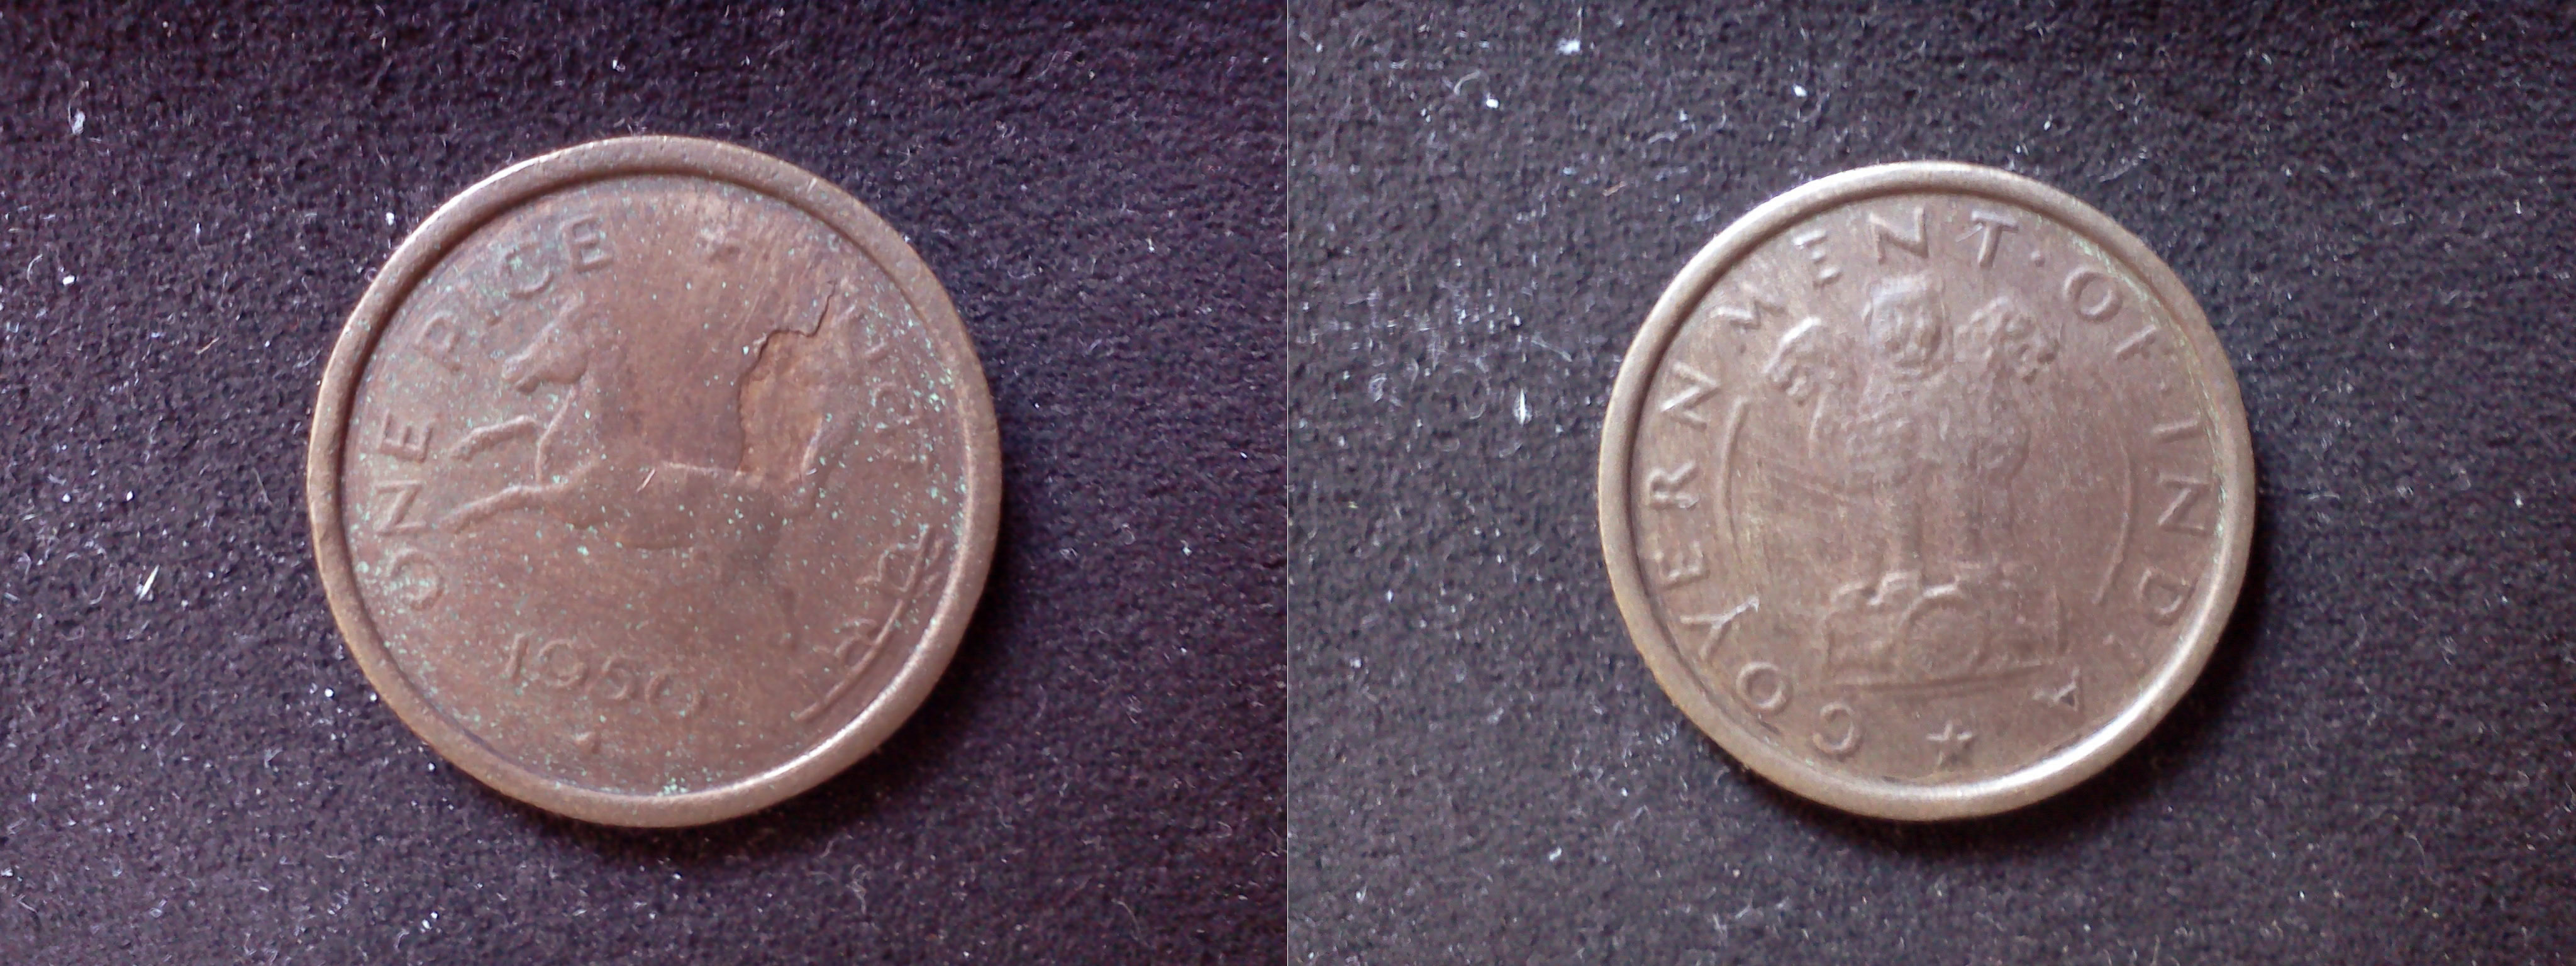 Both sides of copper-colored coin